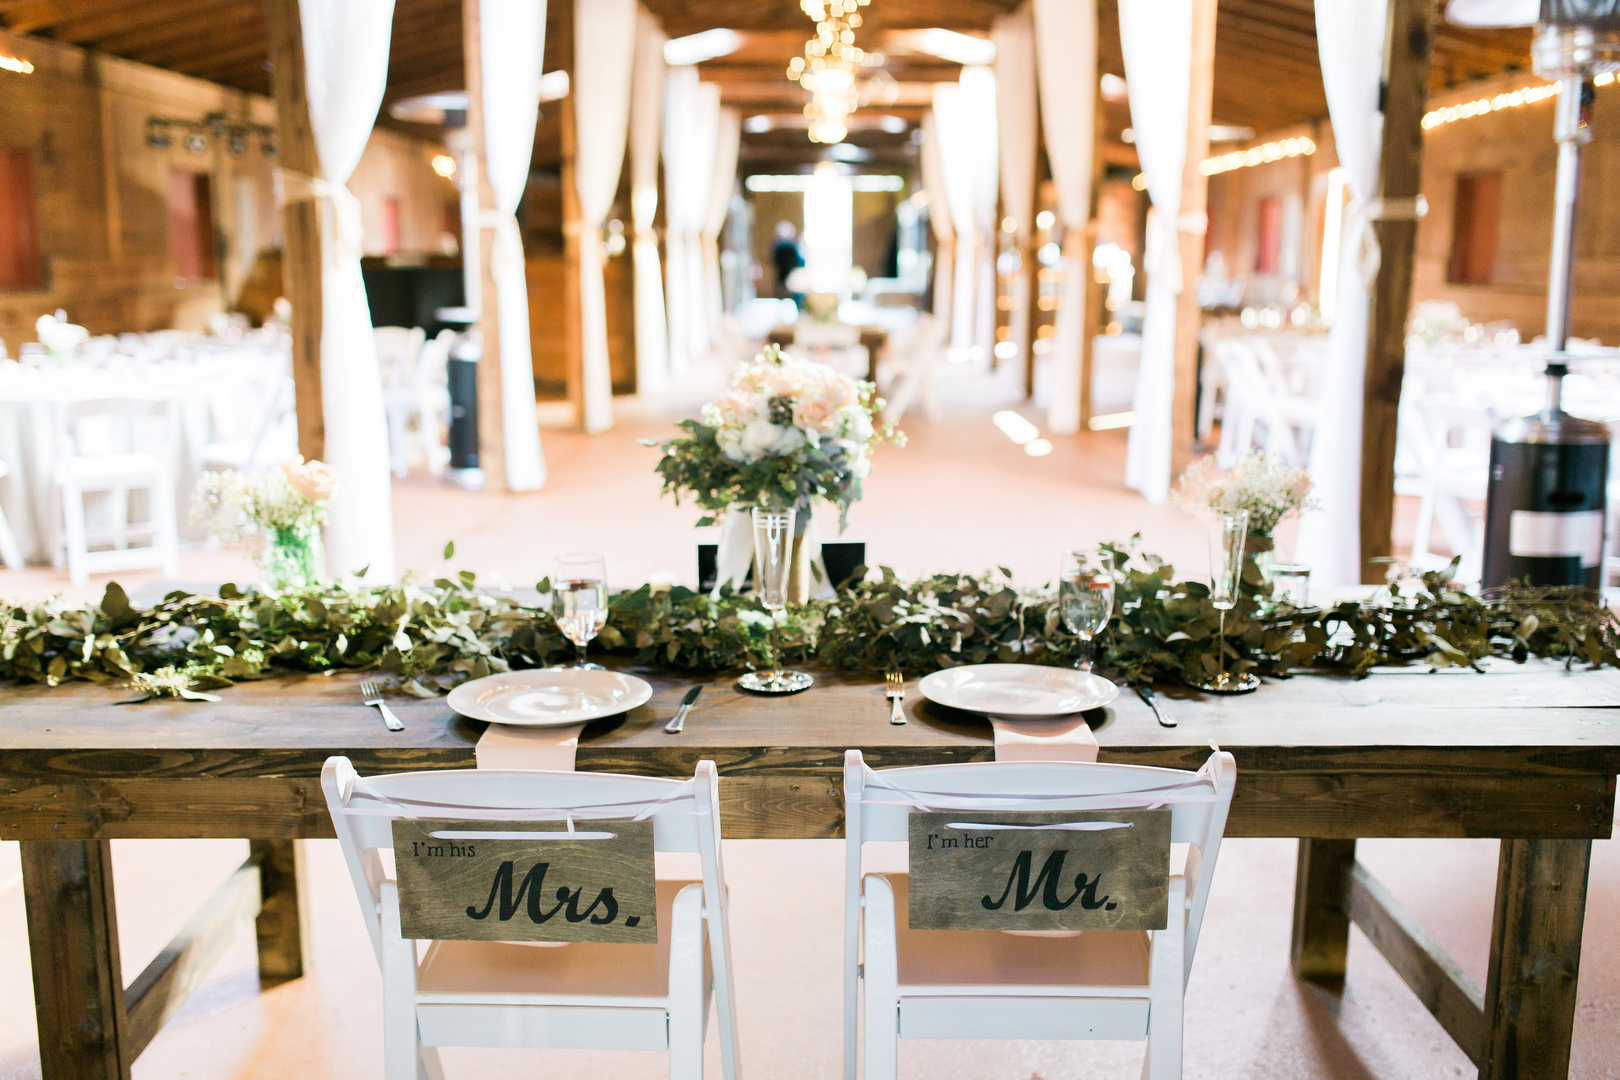 The barn at red gate farms wedding venues in savannah ga event the barn at red gate farms wedding venues in savannah ga event venues wedding reception venues junglespirit Choice Image